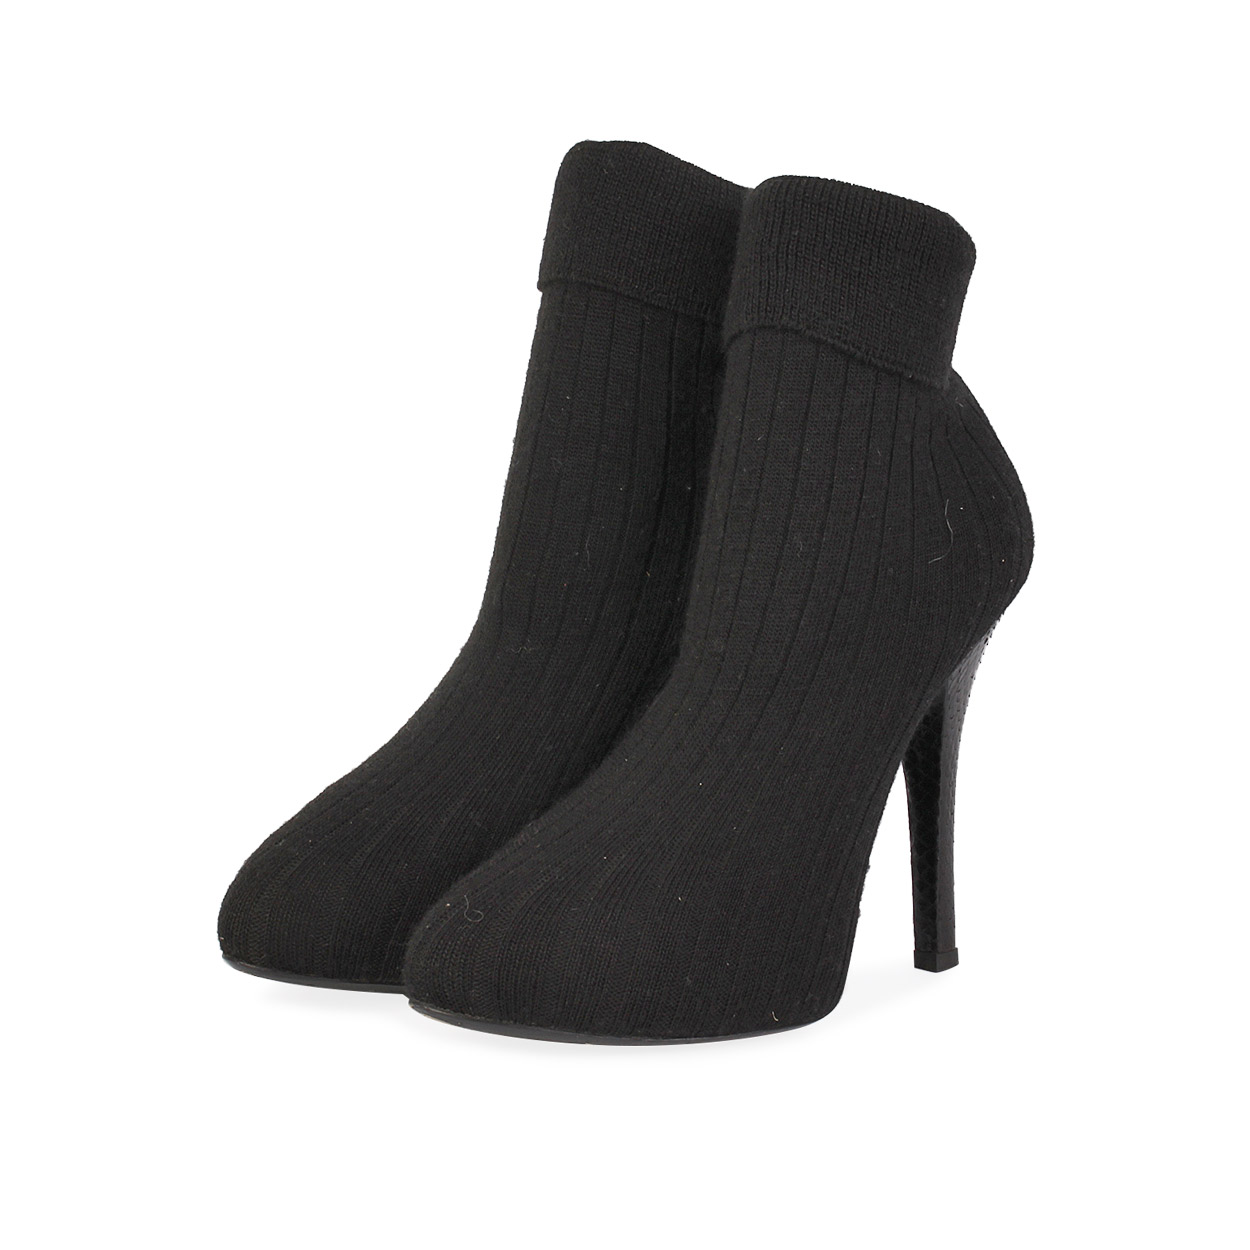 9f8f3fae1f DOLCE   GABBANA Sock Knee High Boots Black - S  39.5 (6.5)